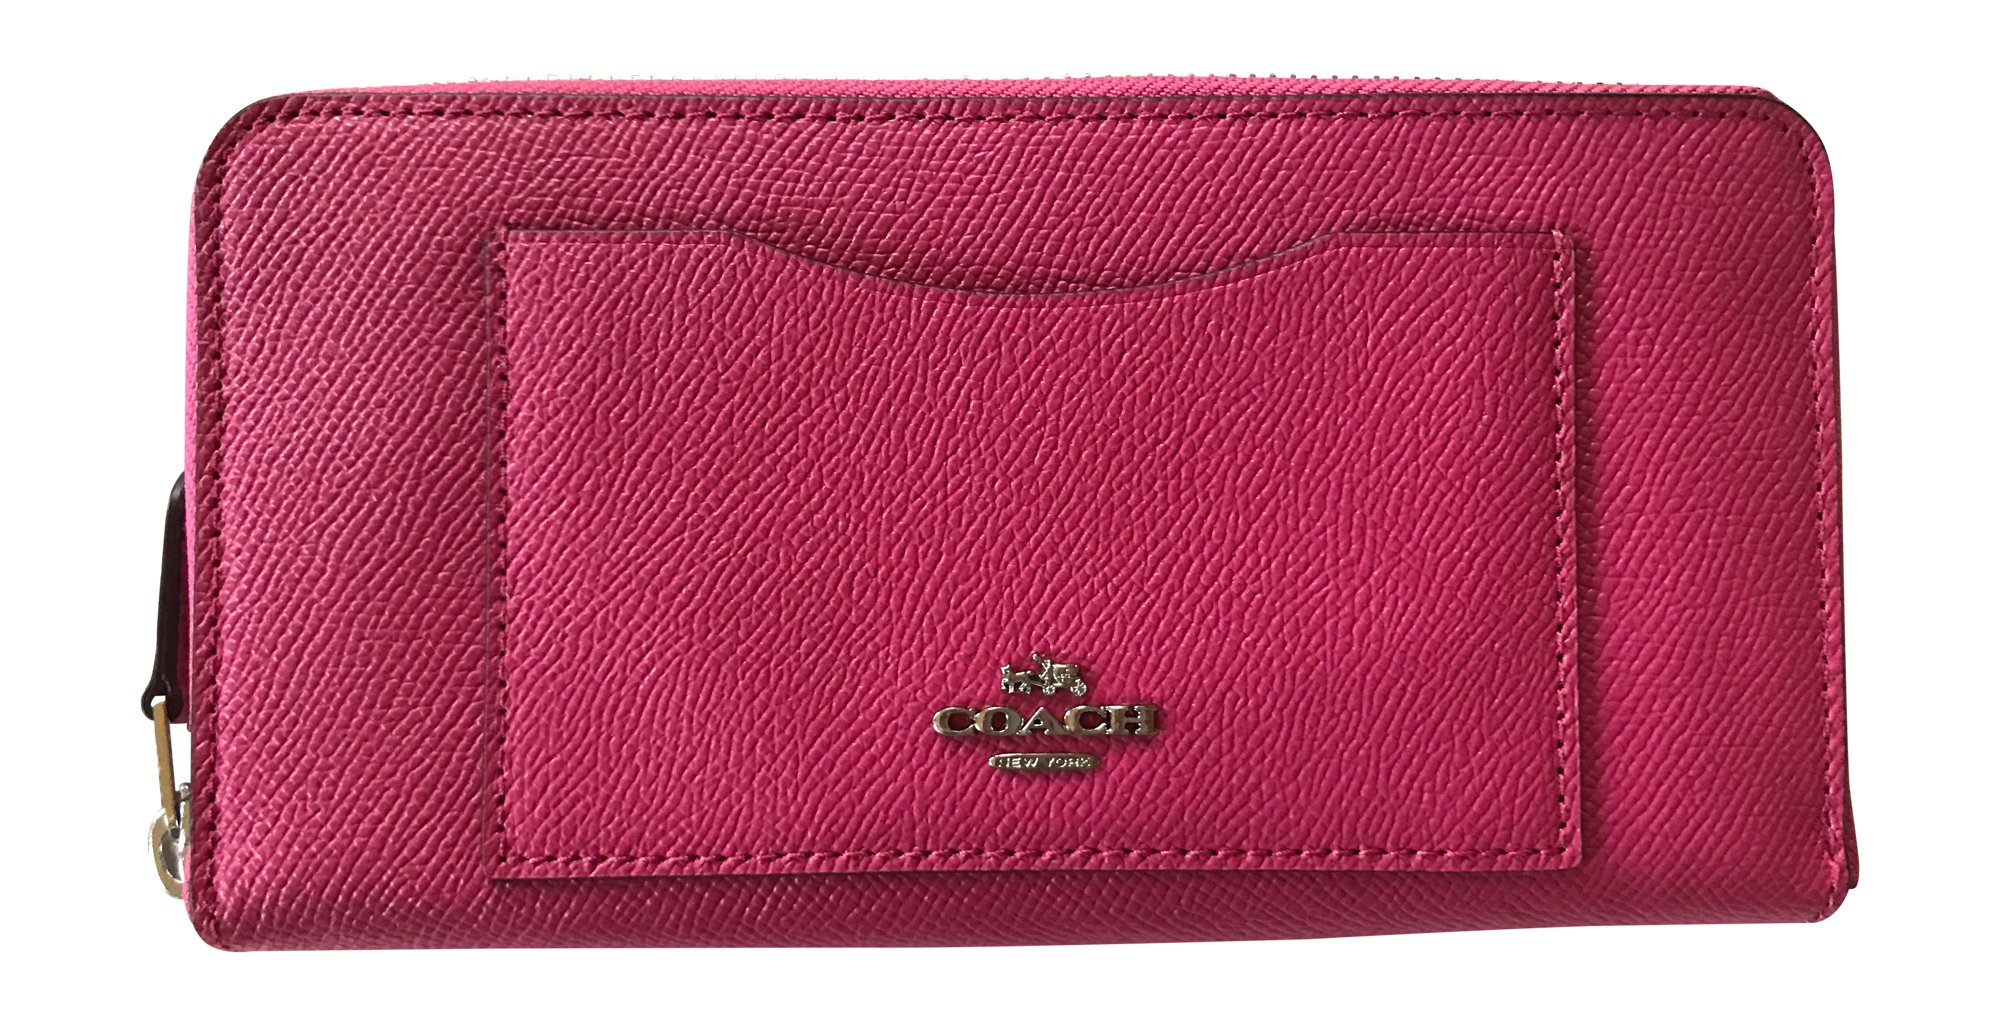 Coach Crossgrain Leather Accordian Zip Wallet, Magenta by Coach